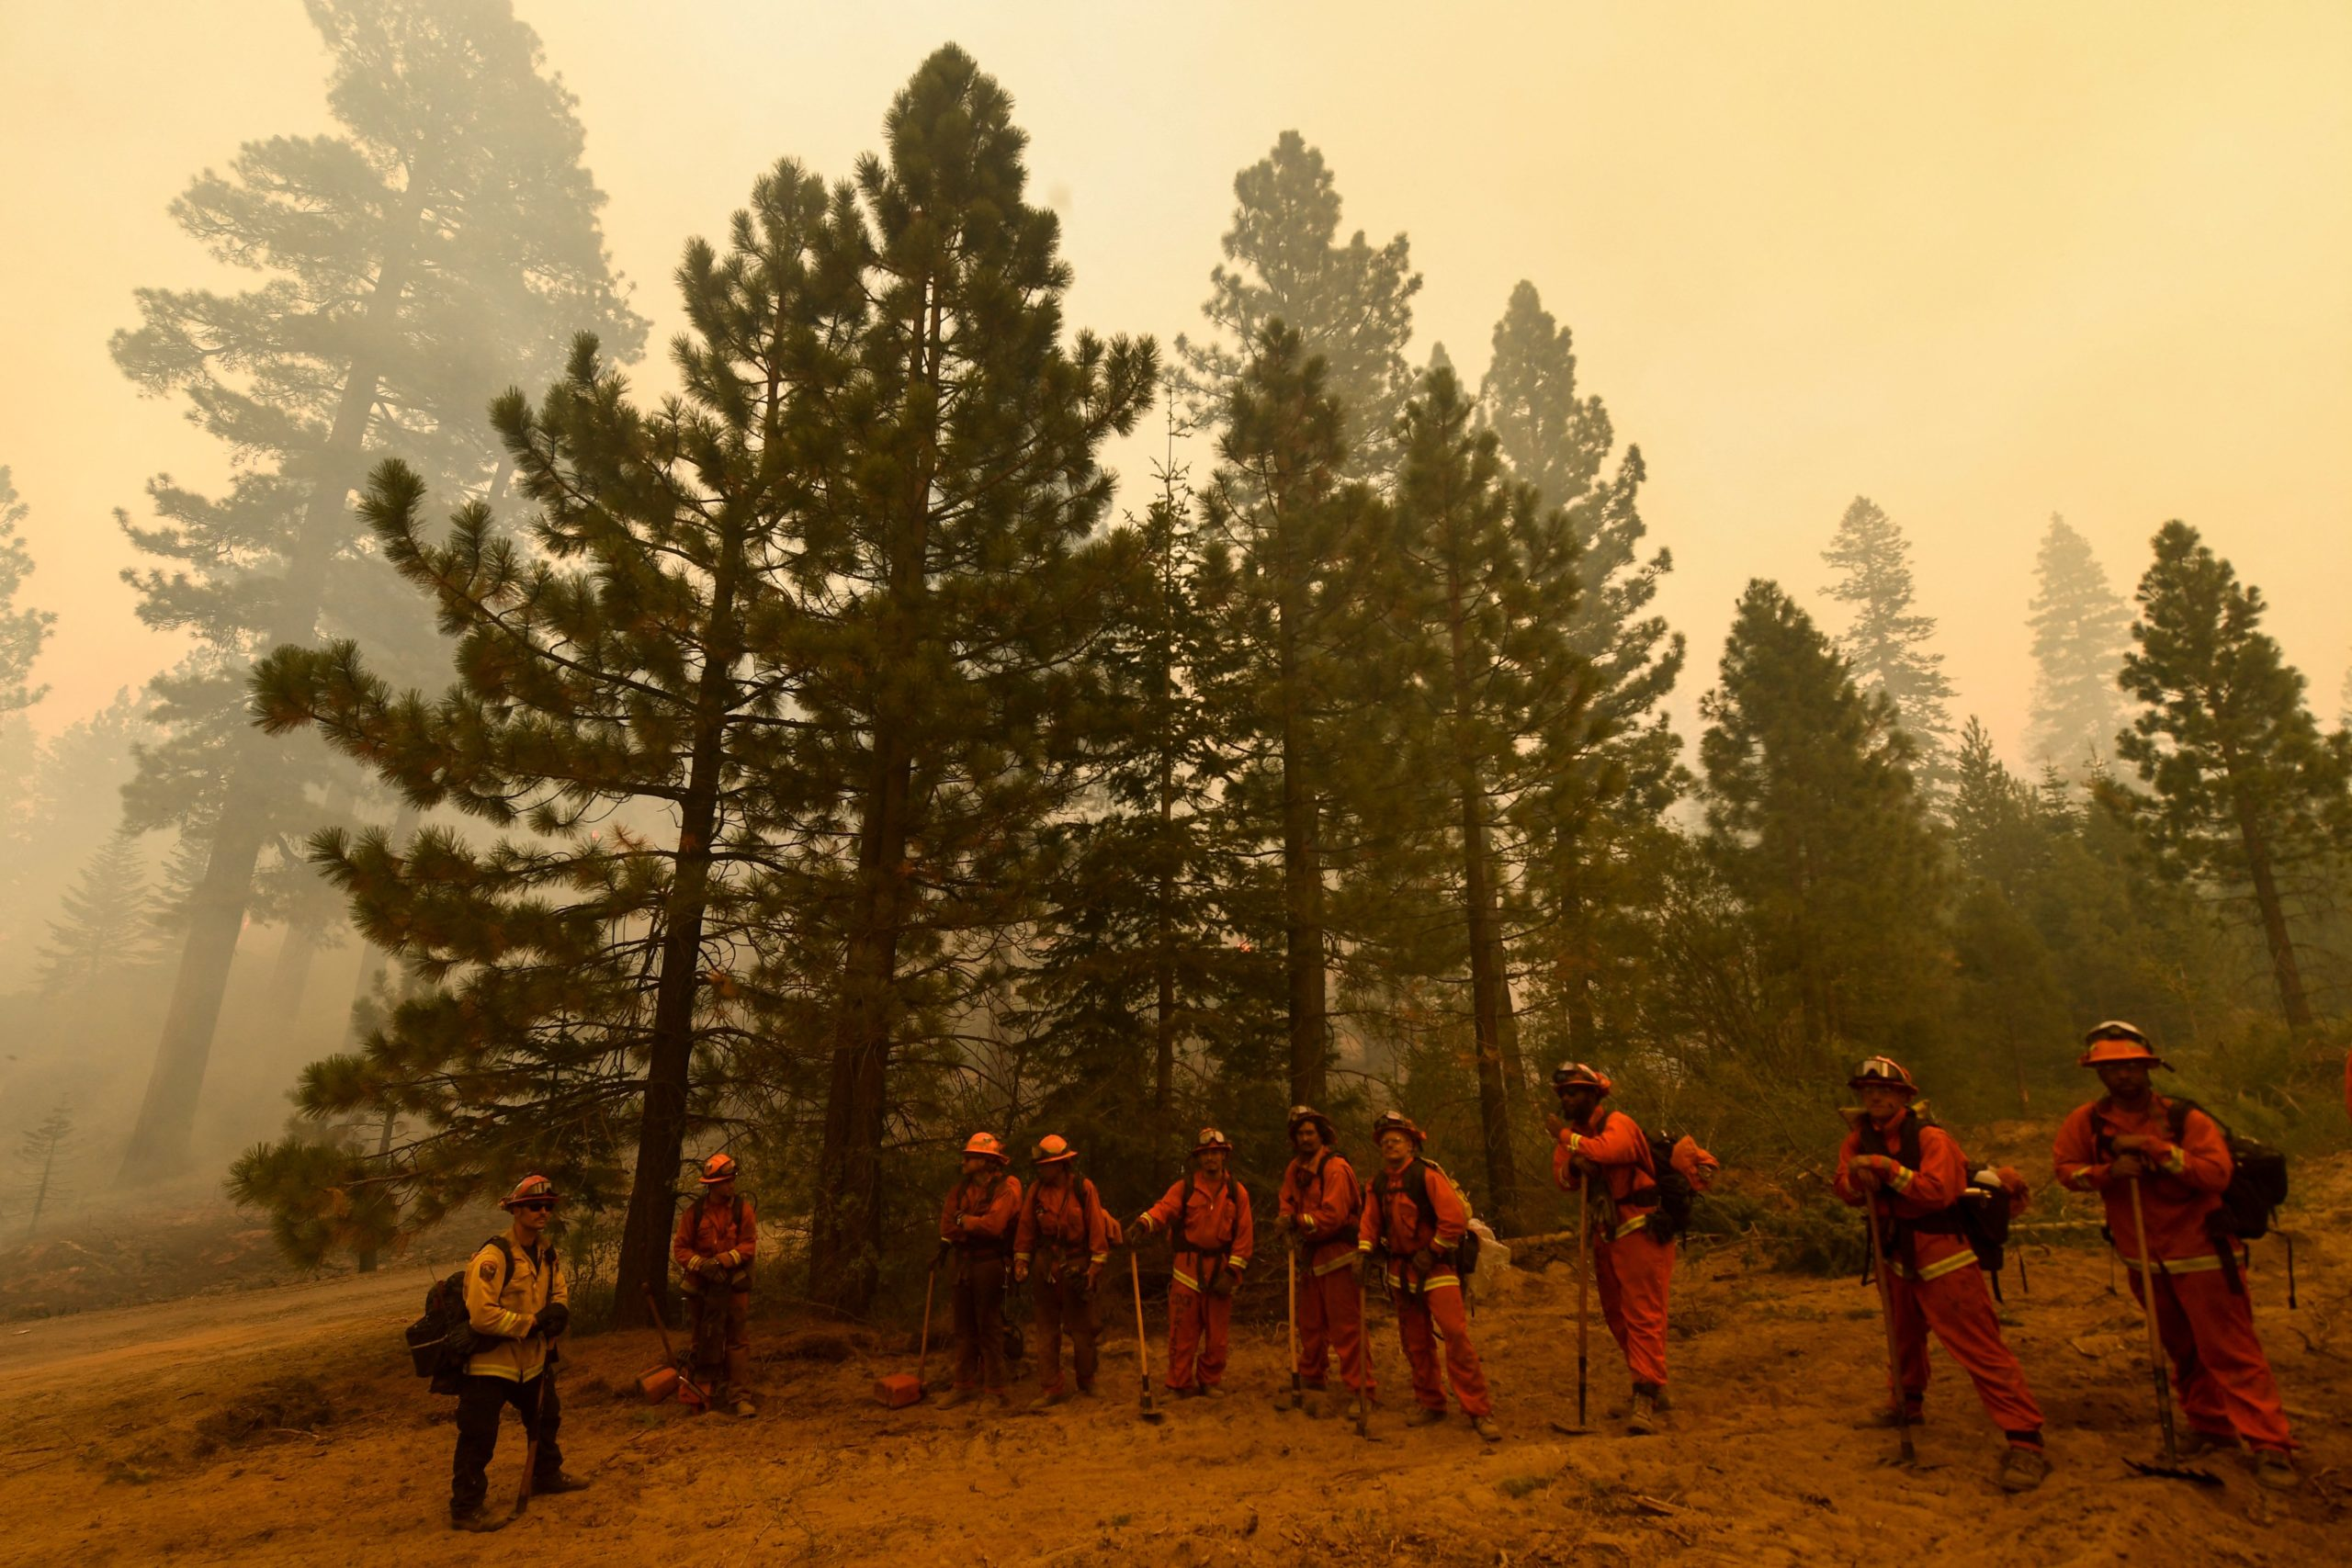 California firefighters walk among burning trees on Aug. 18 in the Plumas National Forest near Janesville, California. (Patrick T. Fallon/AFP via Getty Images)